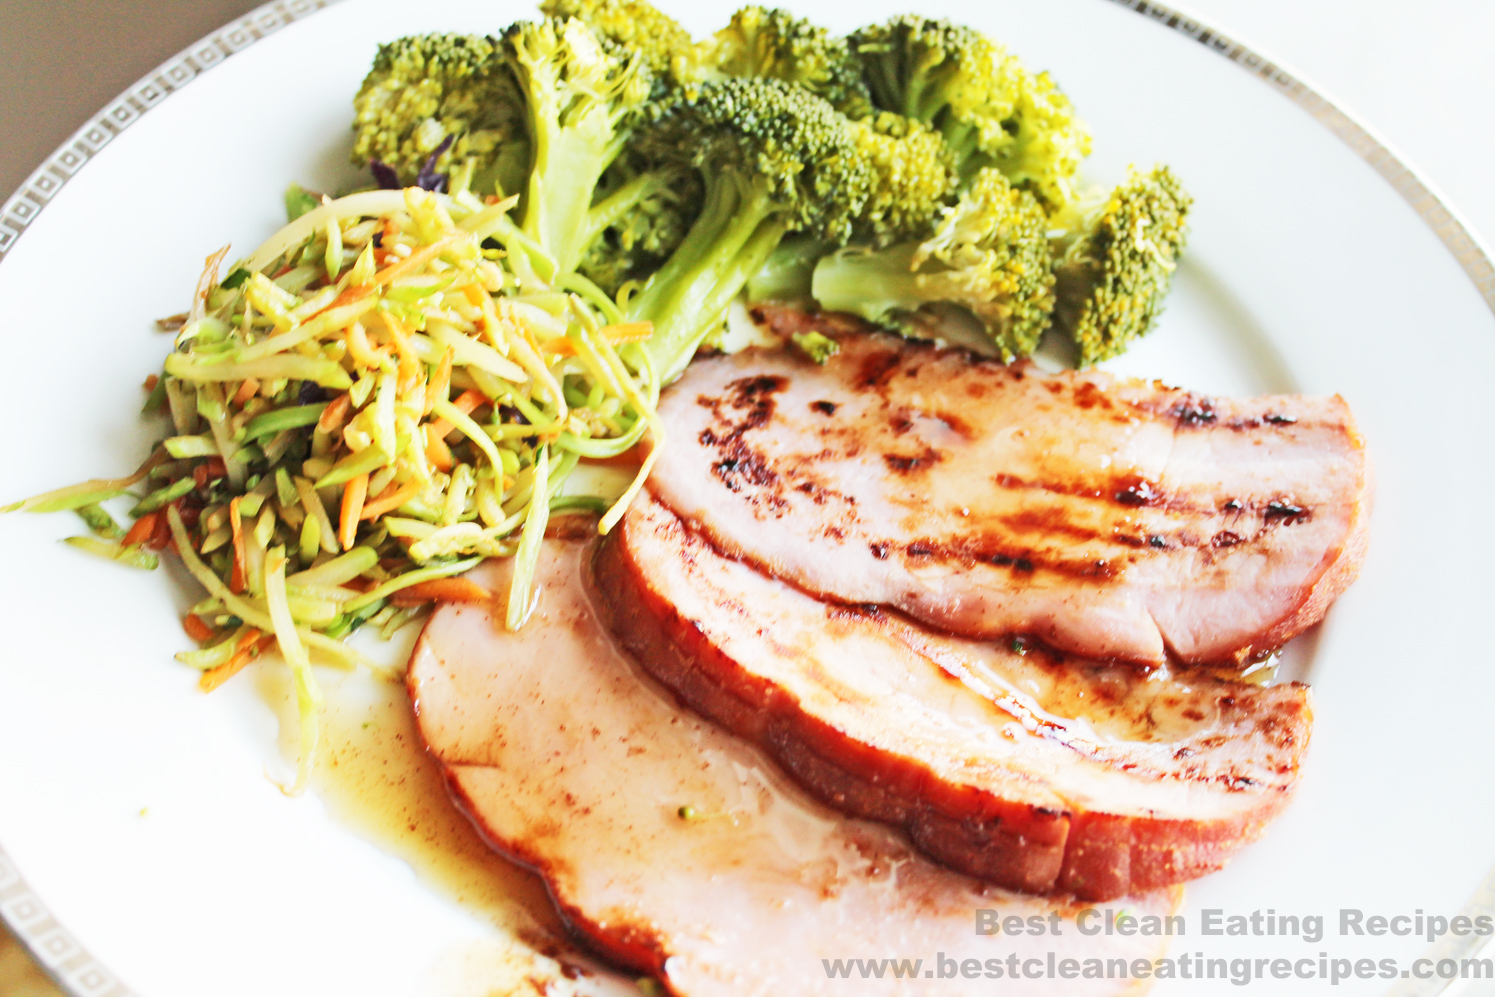 Clean Eating Recipe – Maple Agave Cinnamon Glazed Ham